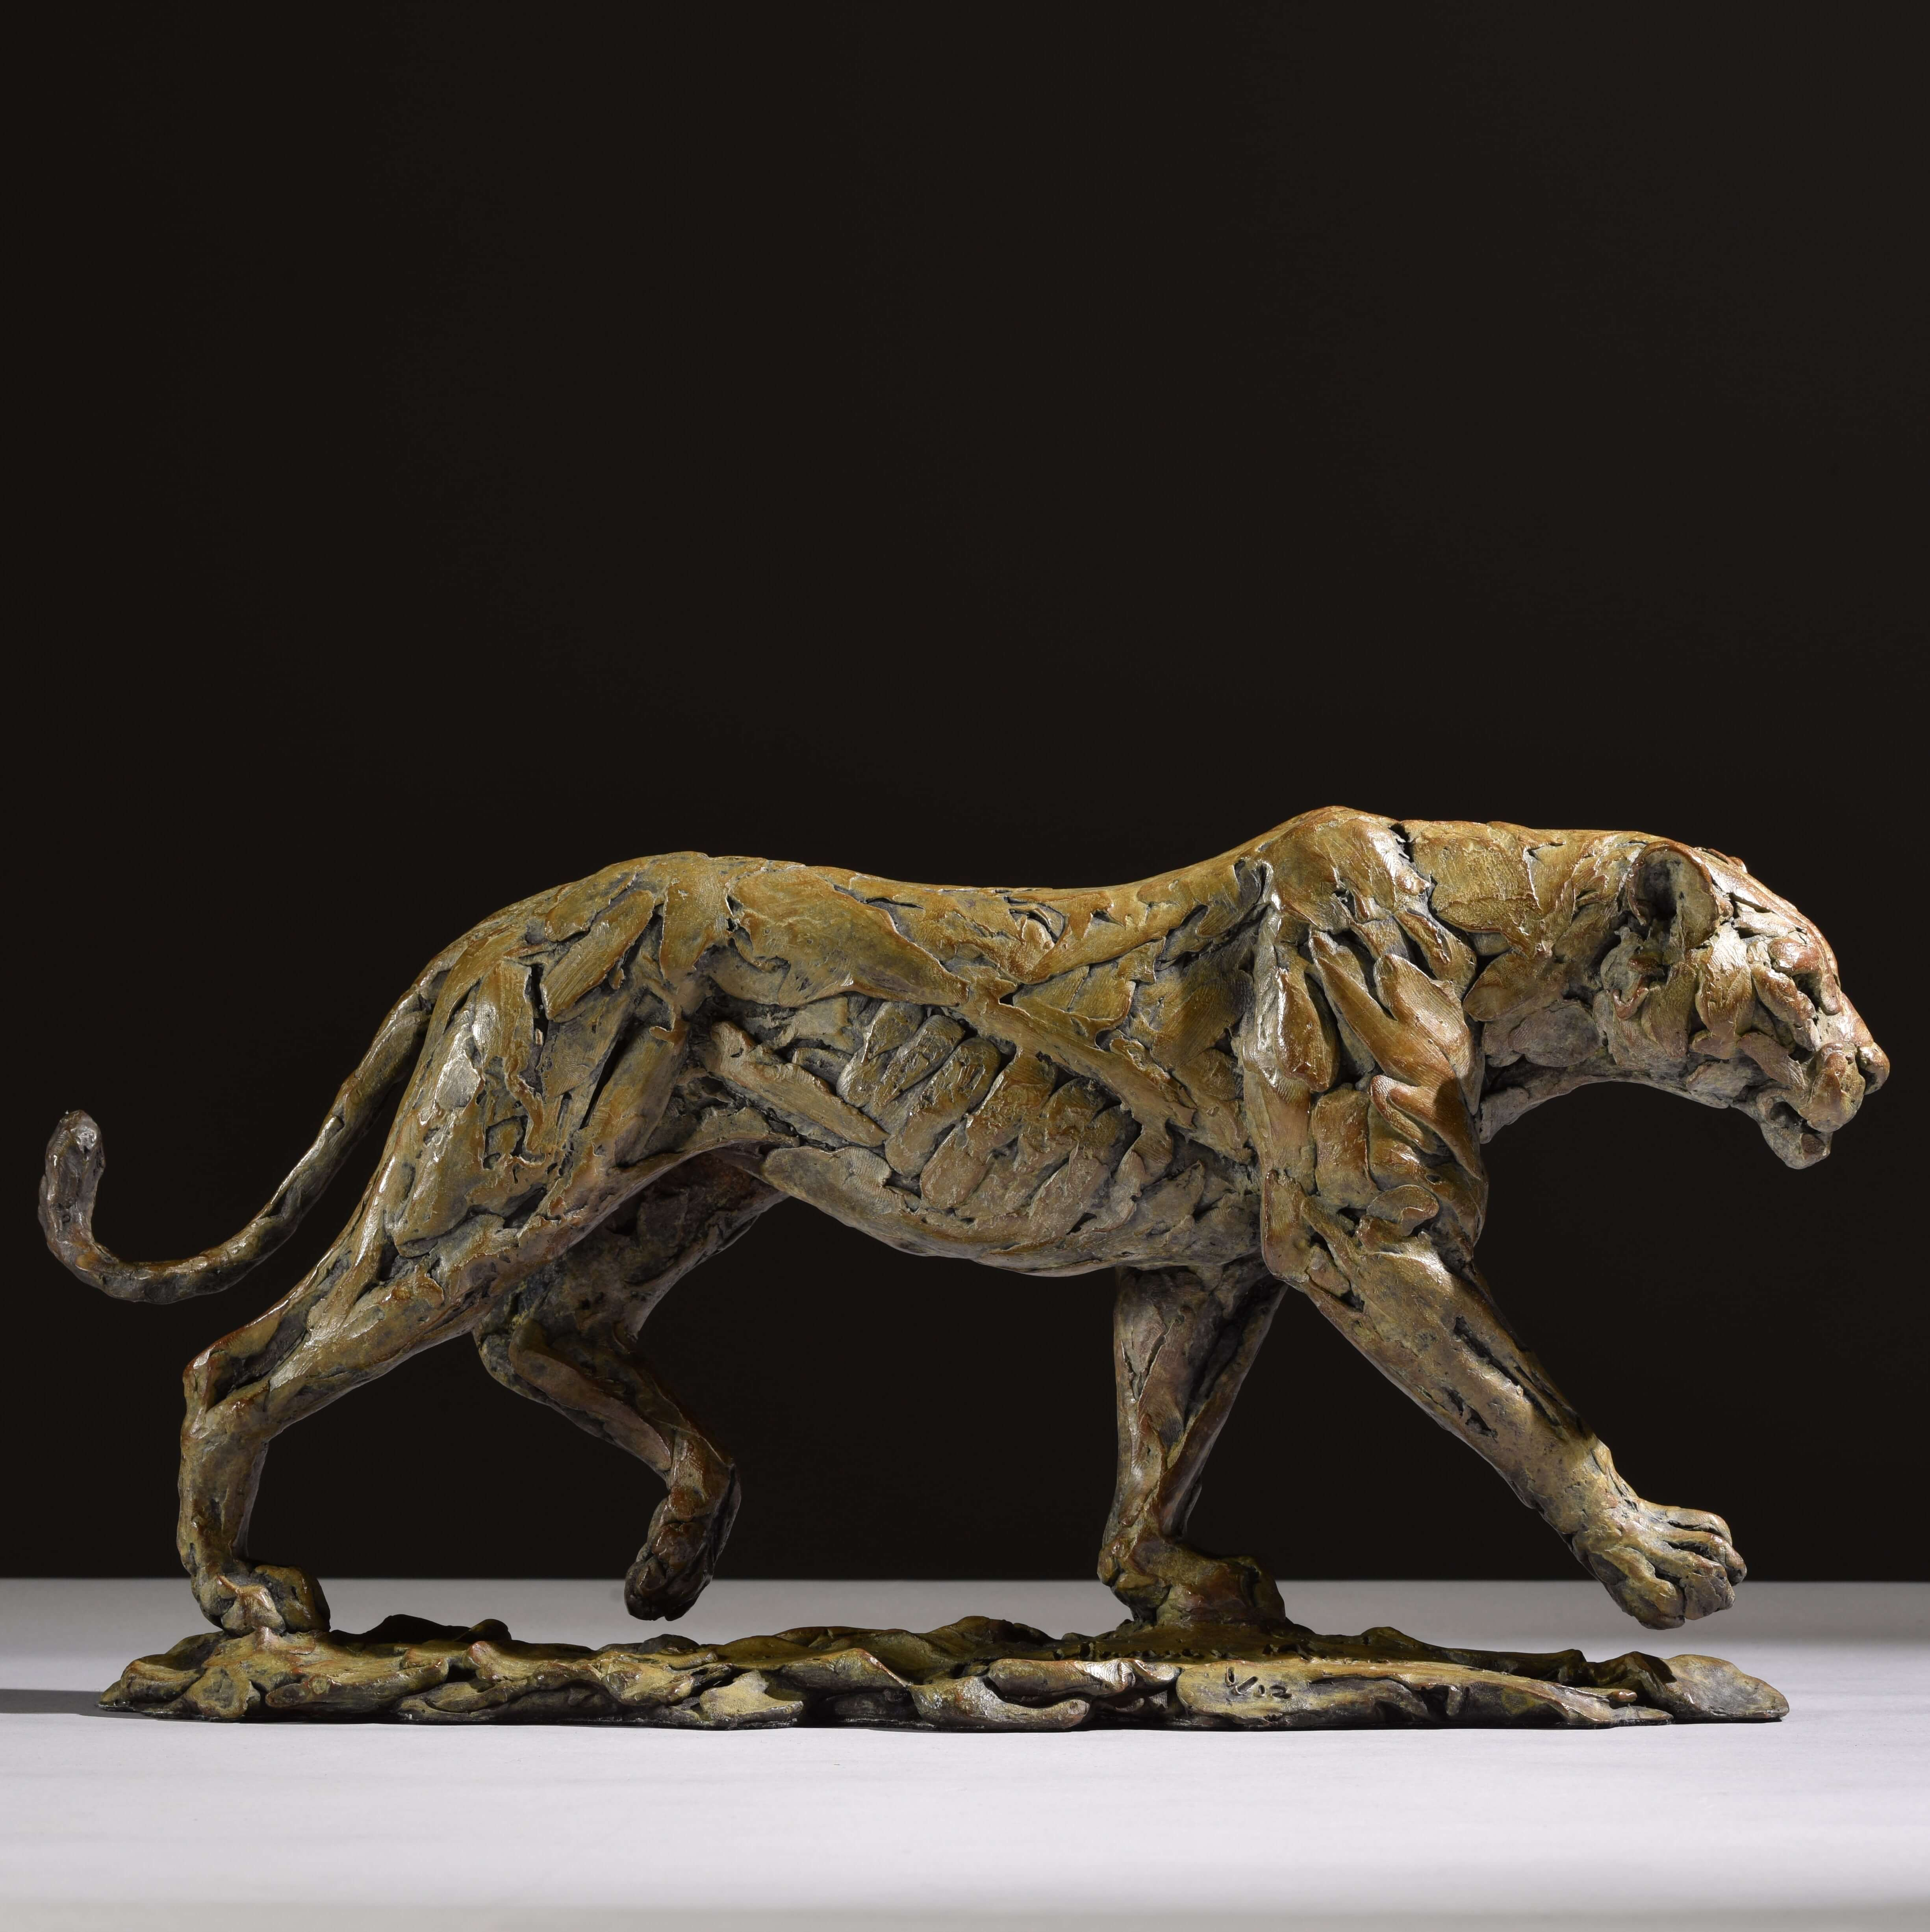 Lioness Walking by Hamish Mackie at Muse. The Sculpture Company